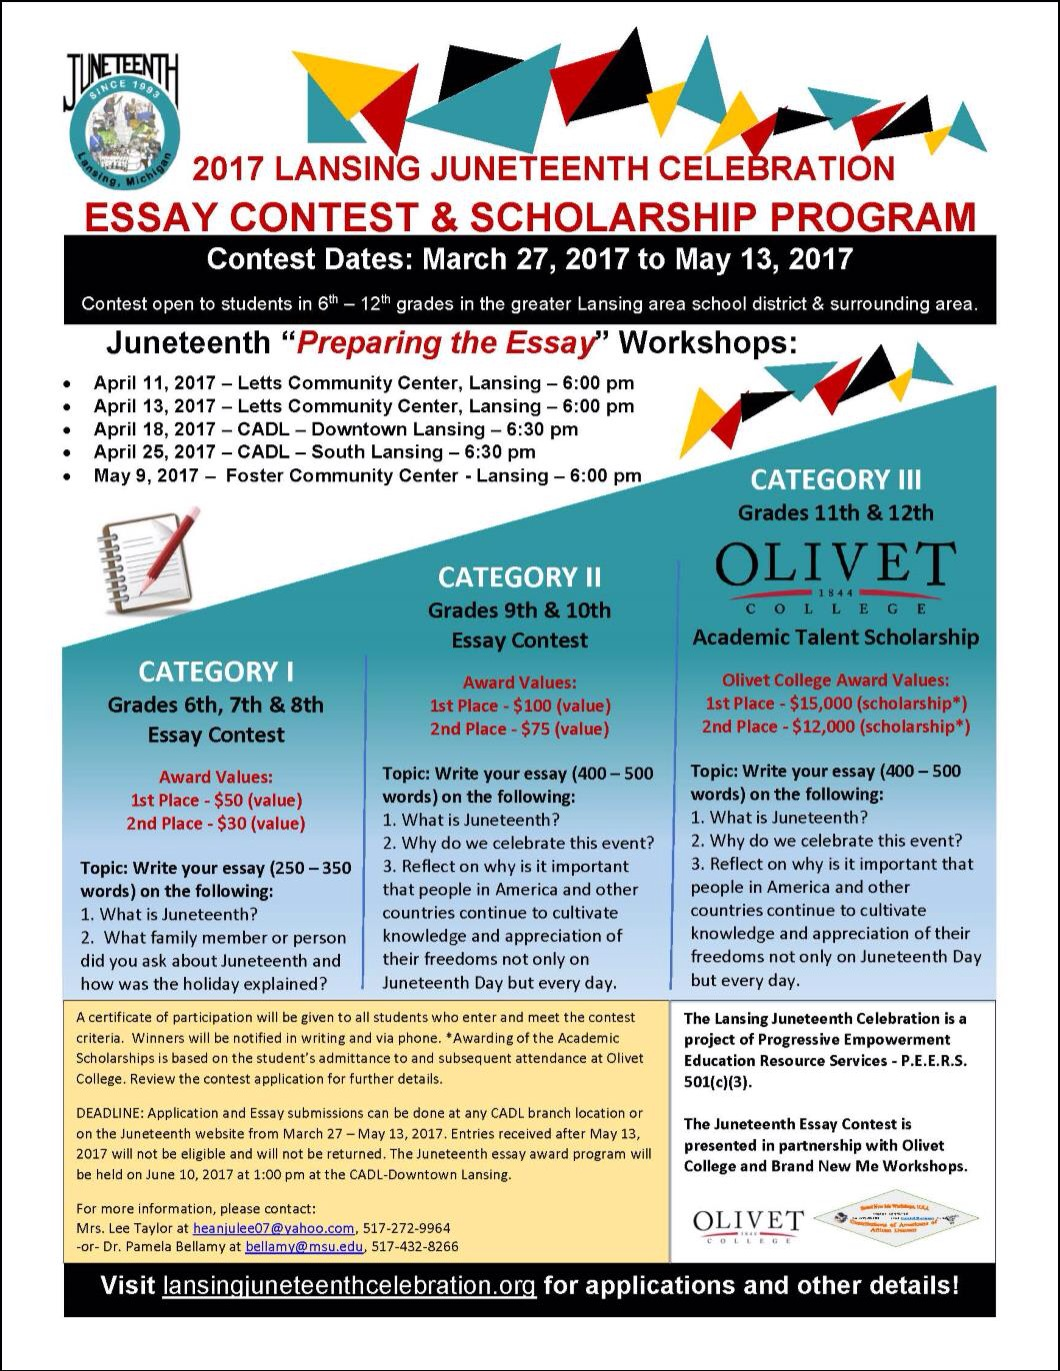 015 Essay Example Scholarship Contest Img 3215 Astounding Contests For High School Students 2019 Middle Full